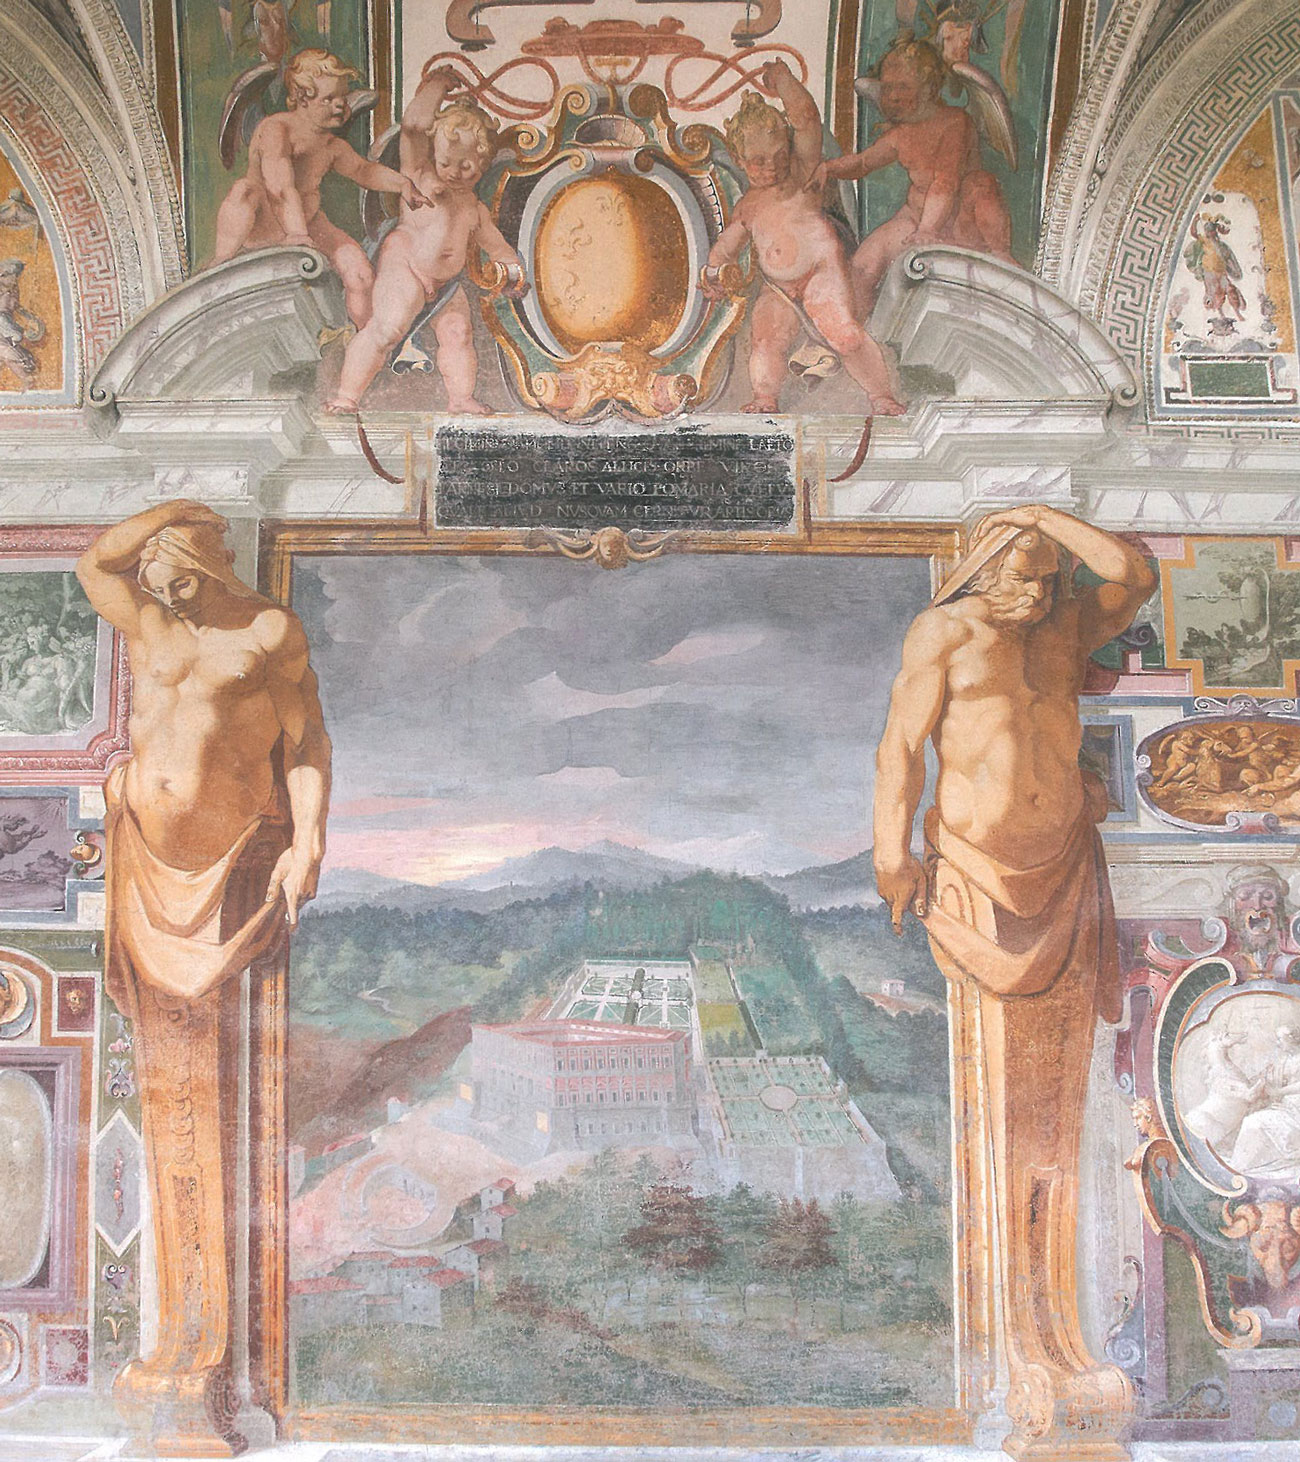 Palazzina Gambara Loggia. A depiction of the gardens of Villa Farnese, in nearby Caprarola. Image courtesy of Il Pegaso Bookshop, in Bagnaia.